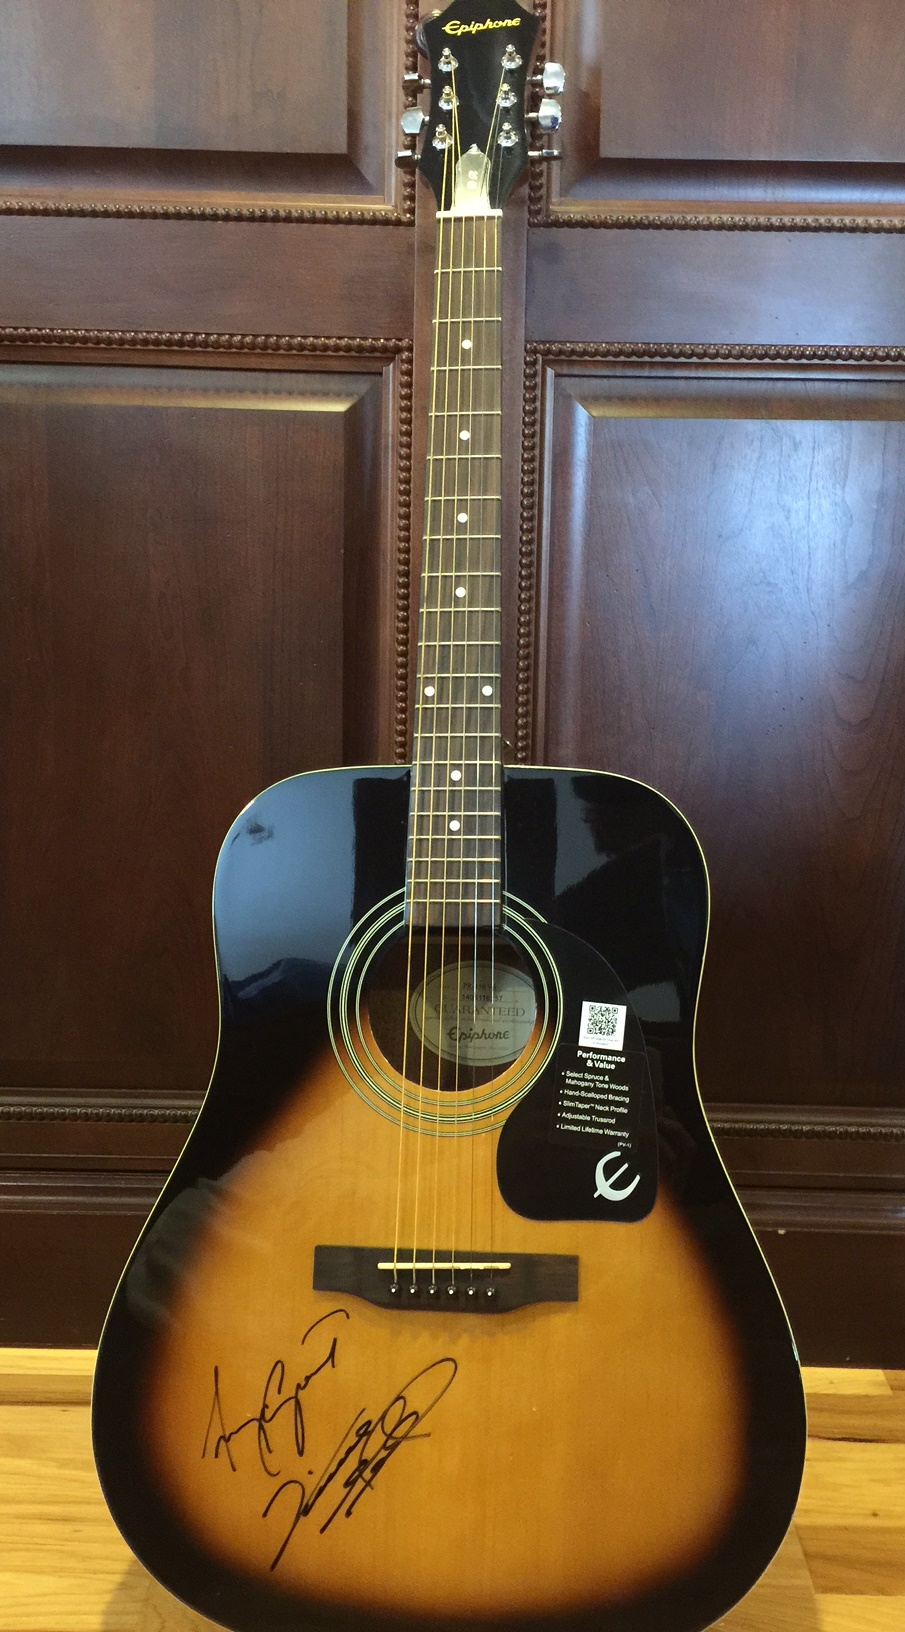 Gipson_Epiphone_Grant_Gill_Signed_Guitar.jpg